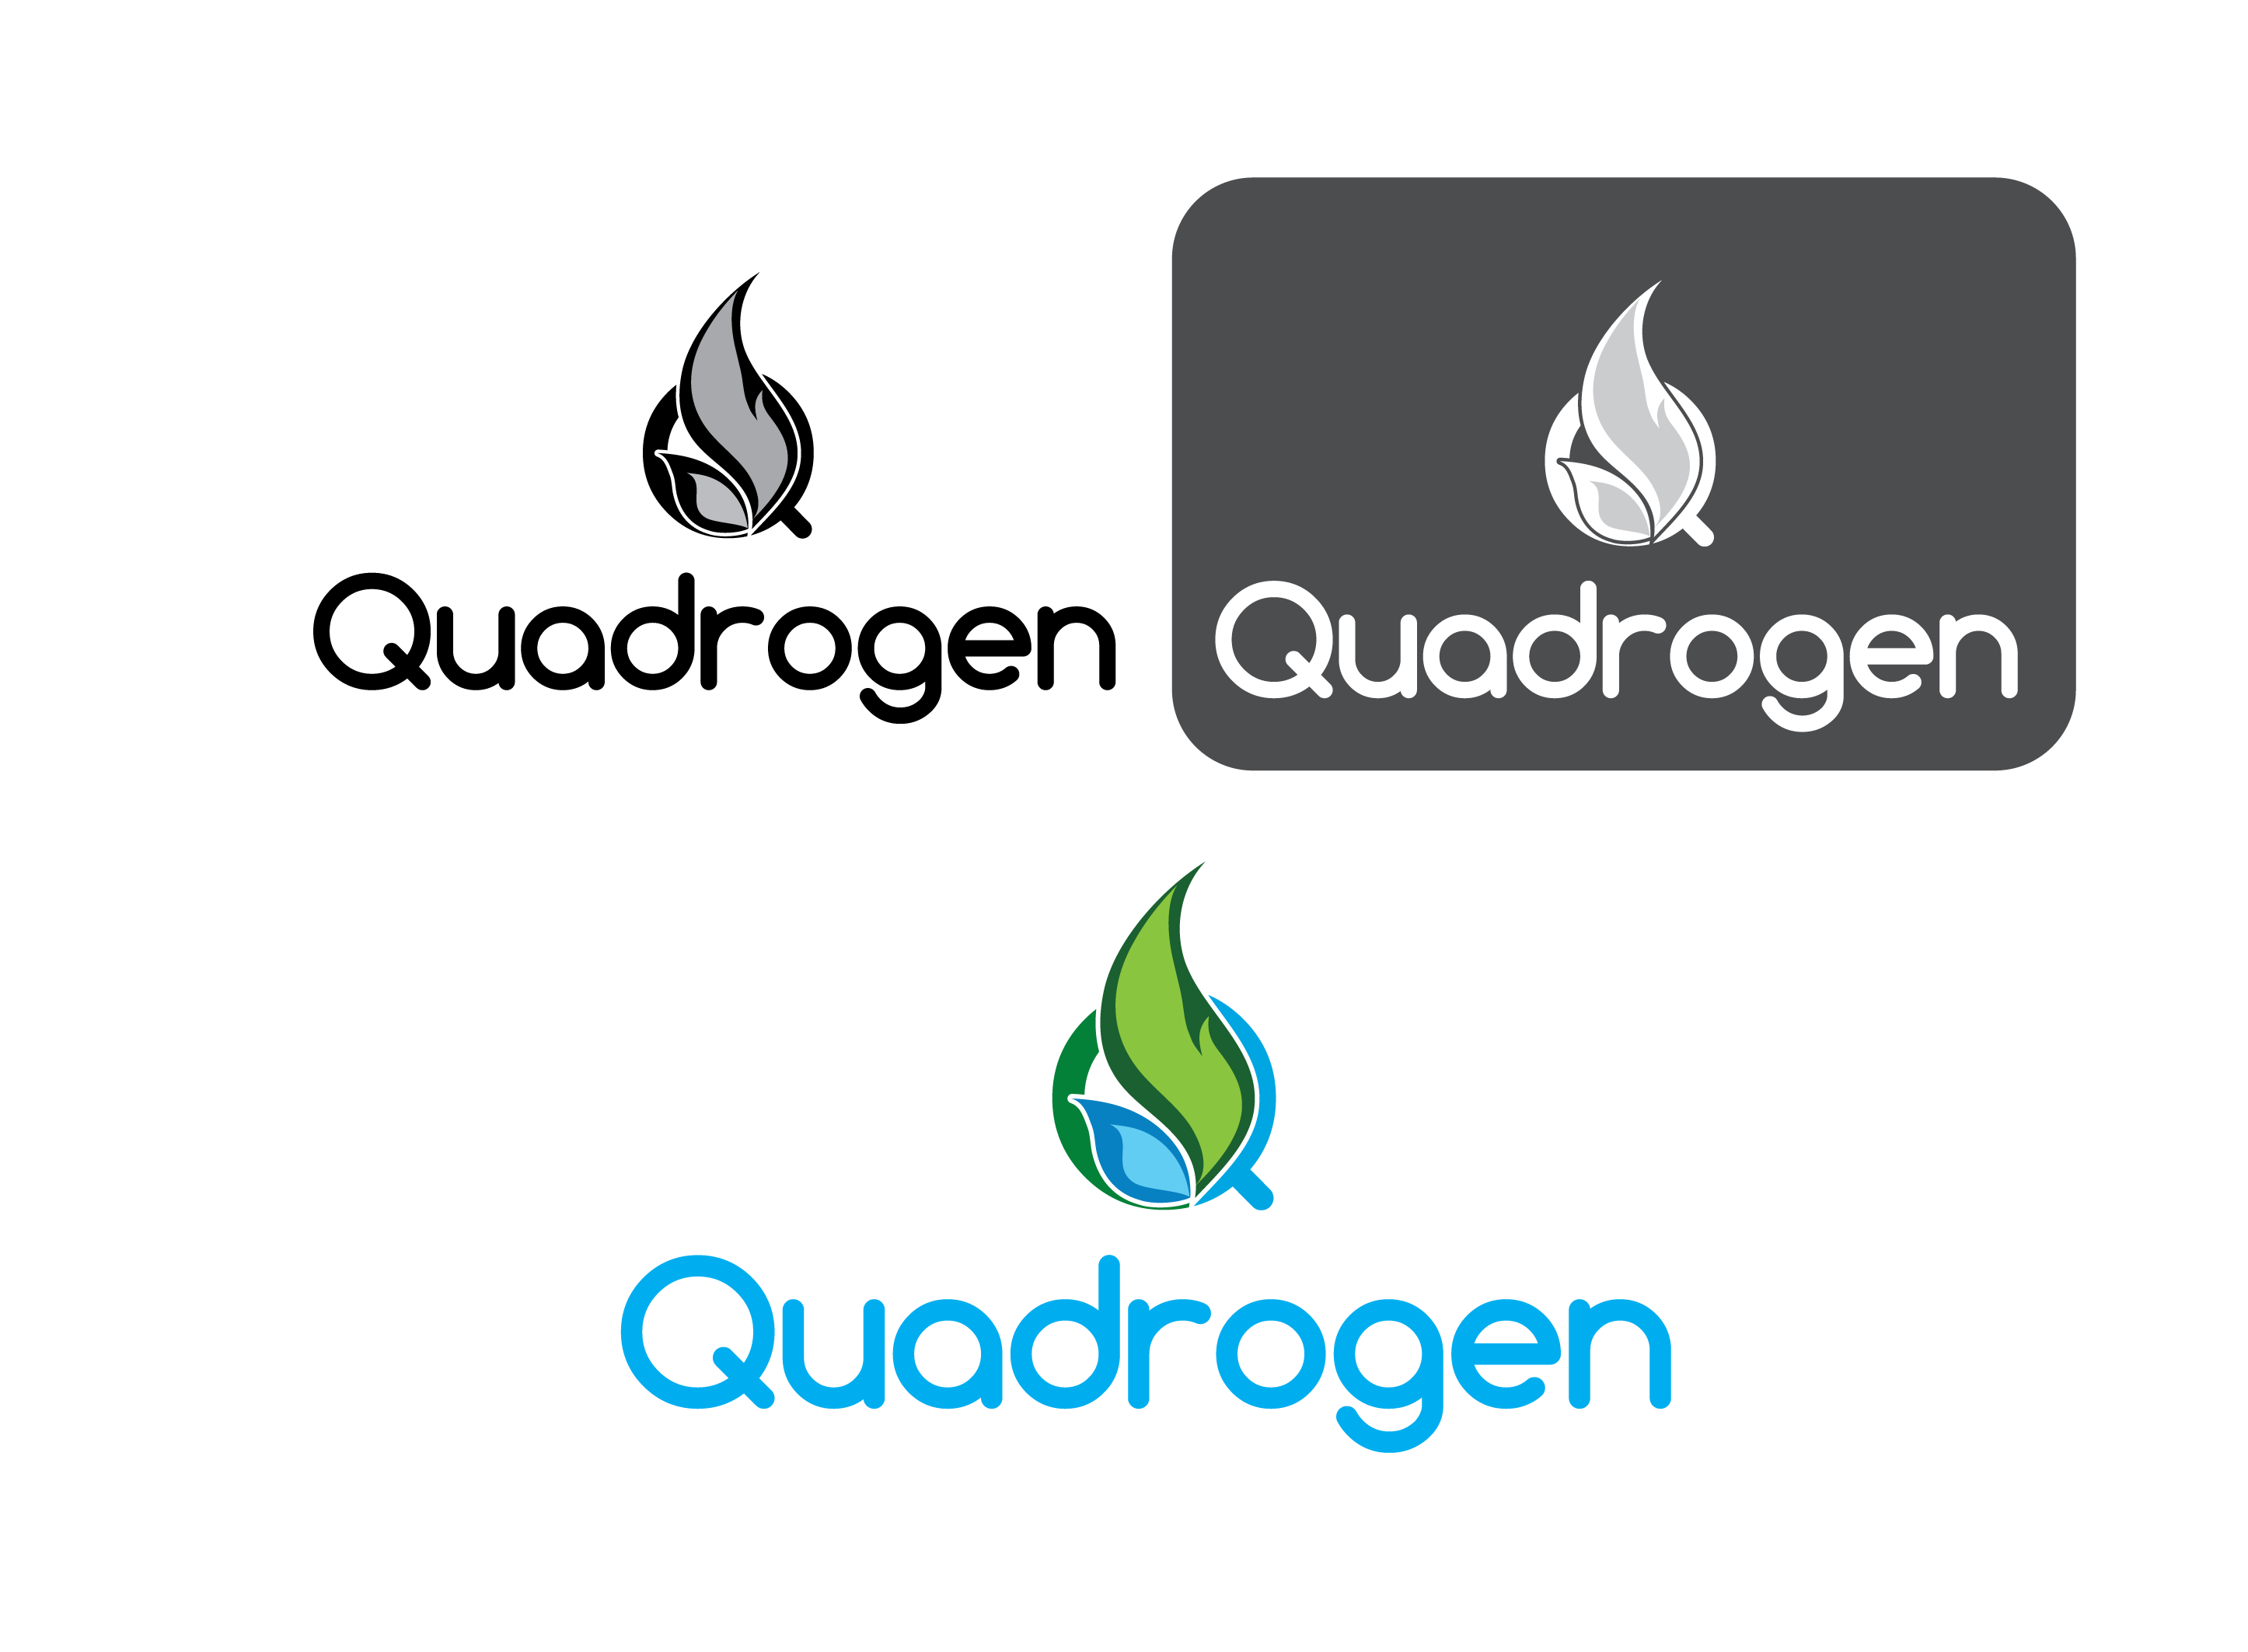 Logo Design by 354studio - Entry No. 152 in the Logo Design Contest New Logo Design for Quadrogen Power Systems, Inc.